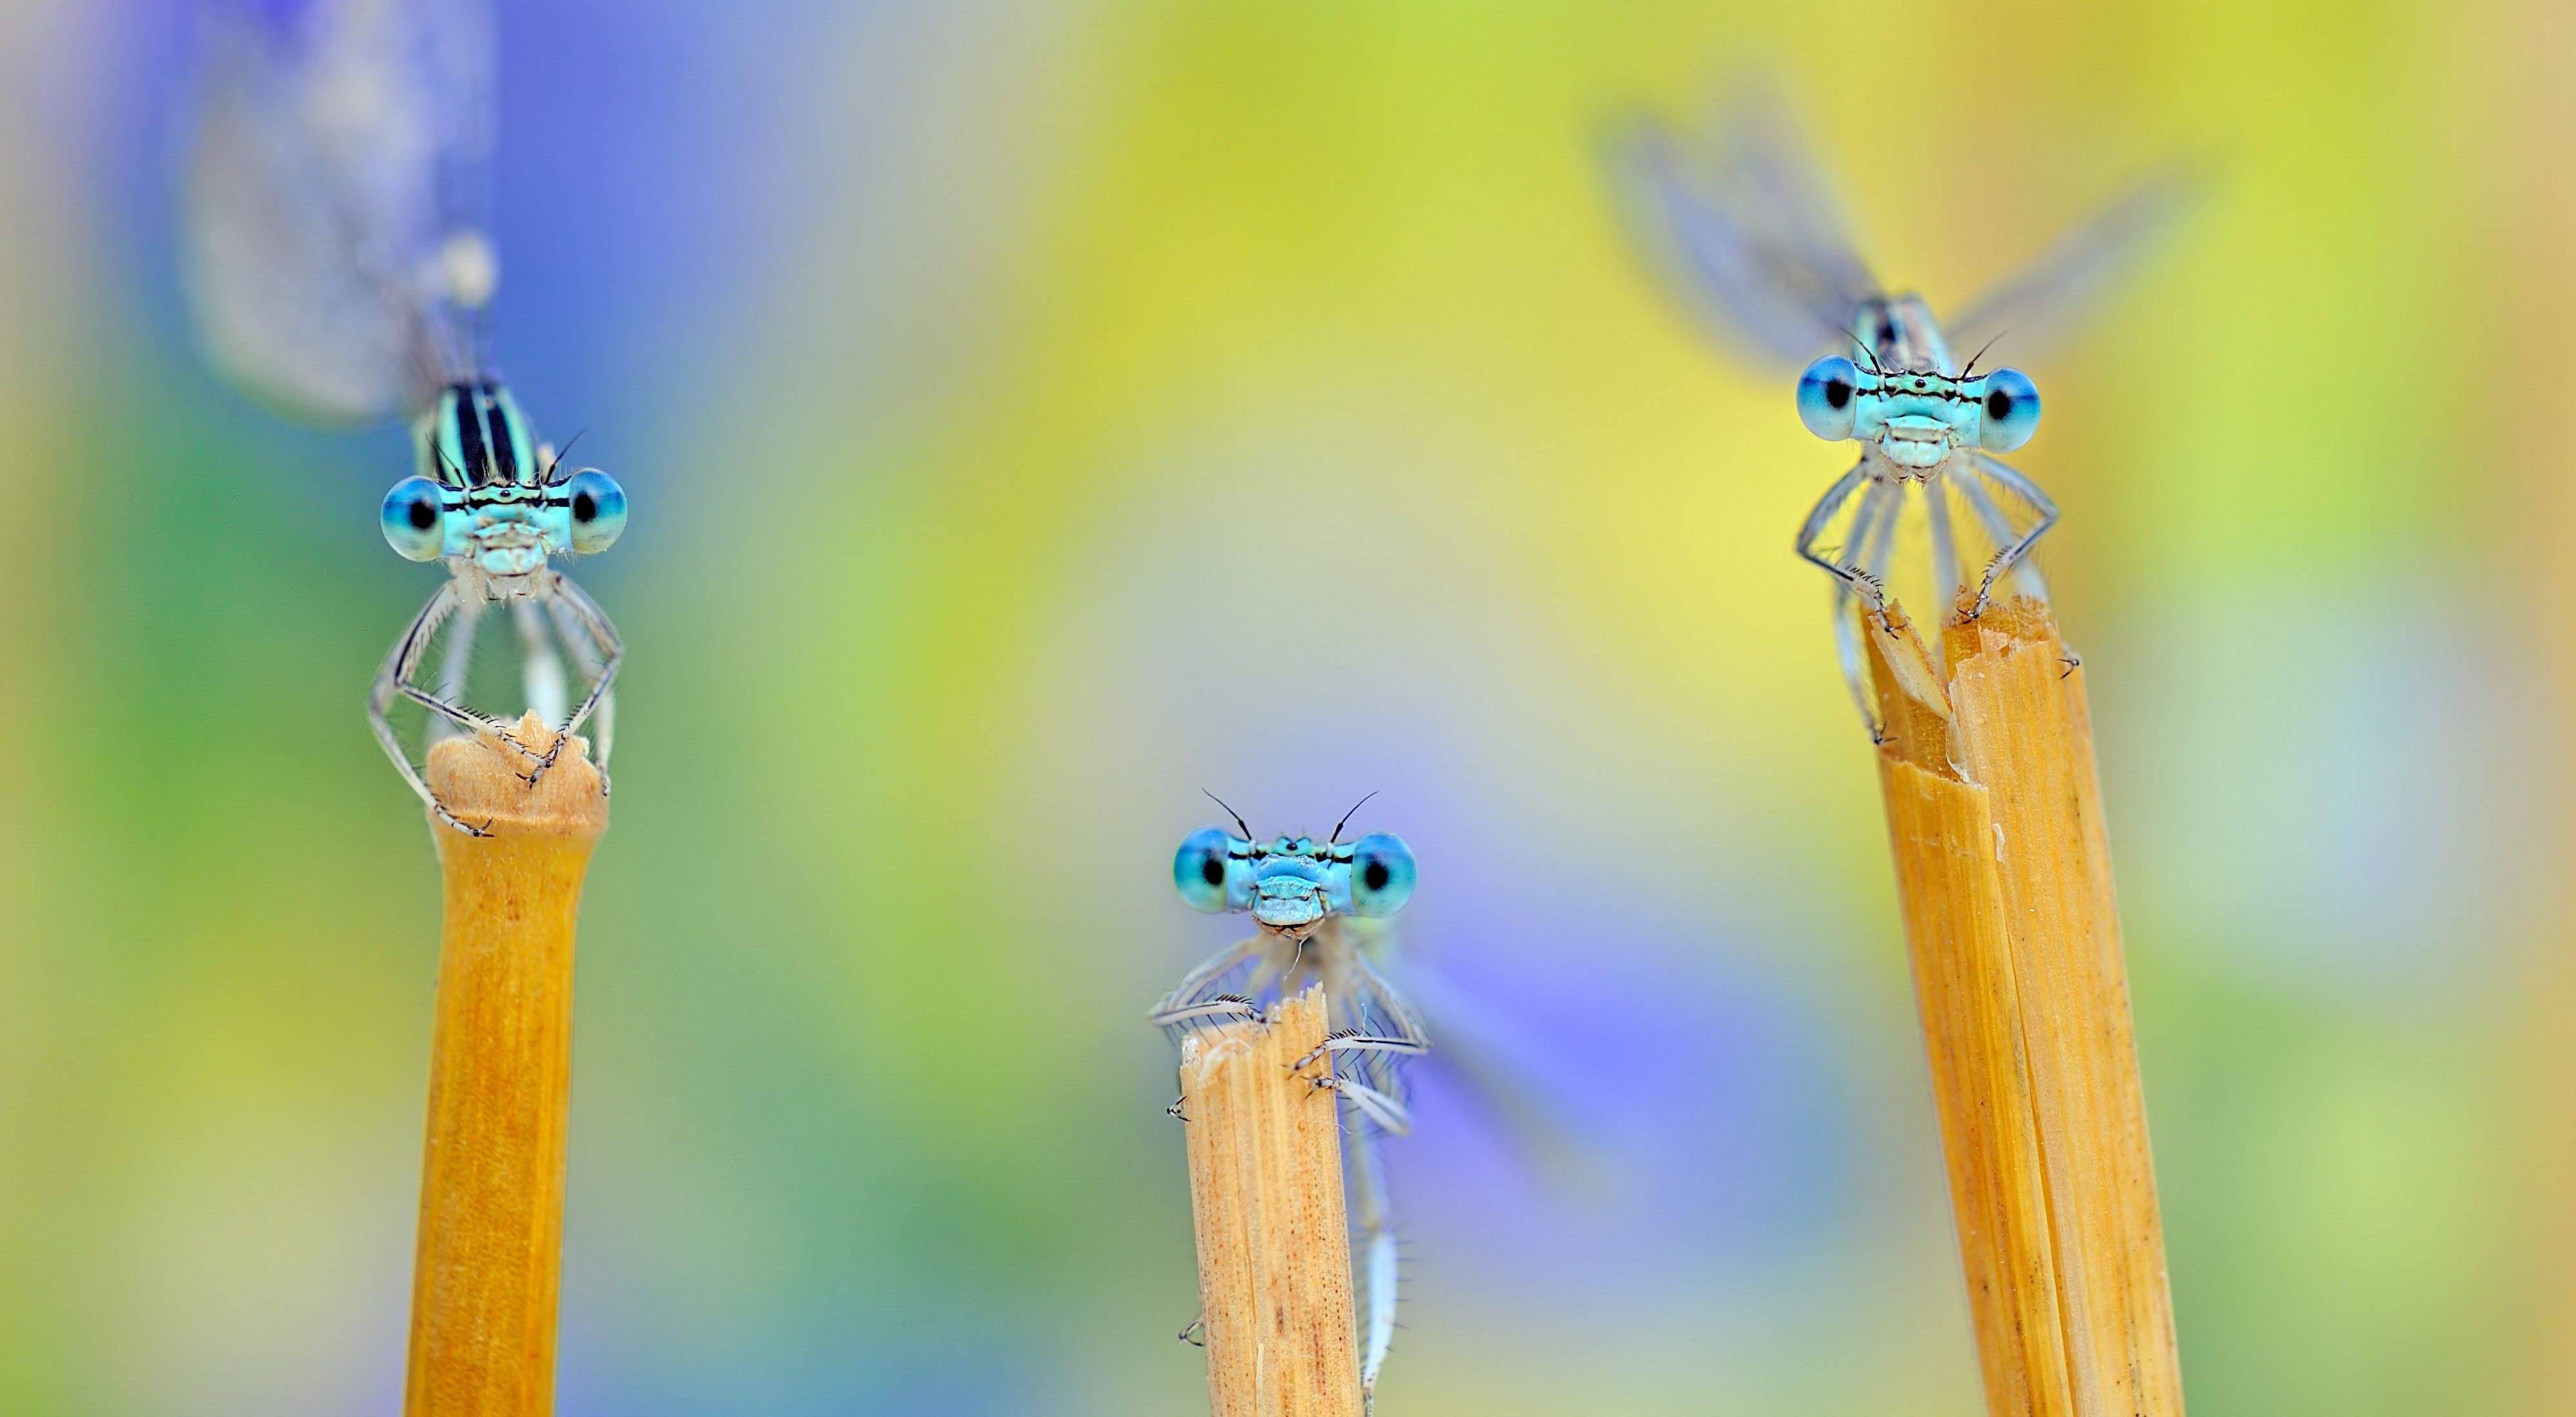 3 damselflies macro photography